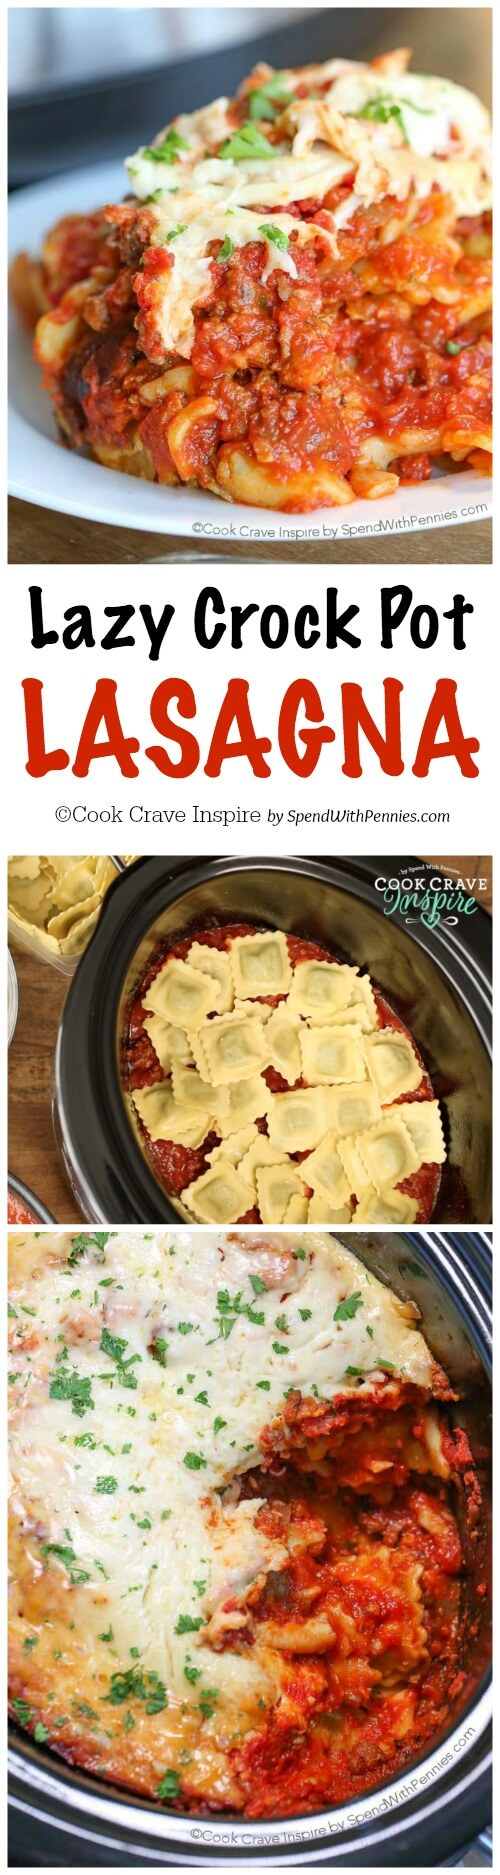 Lazy Crock Pot Lasagna is a family favorite and so quick and easy to make! A delicious meat sauce is layered with cheese and